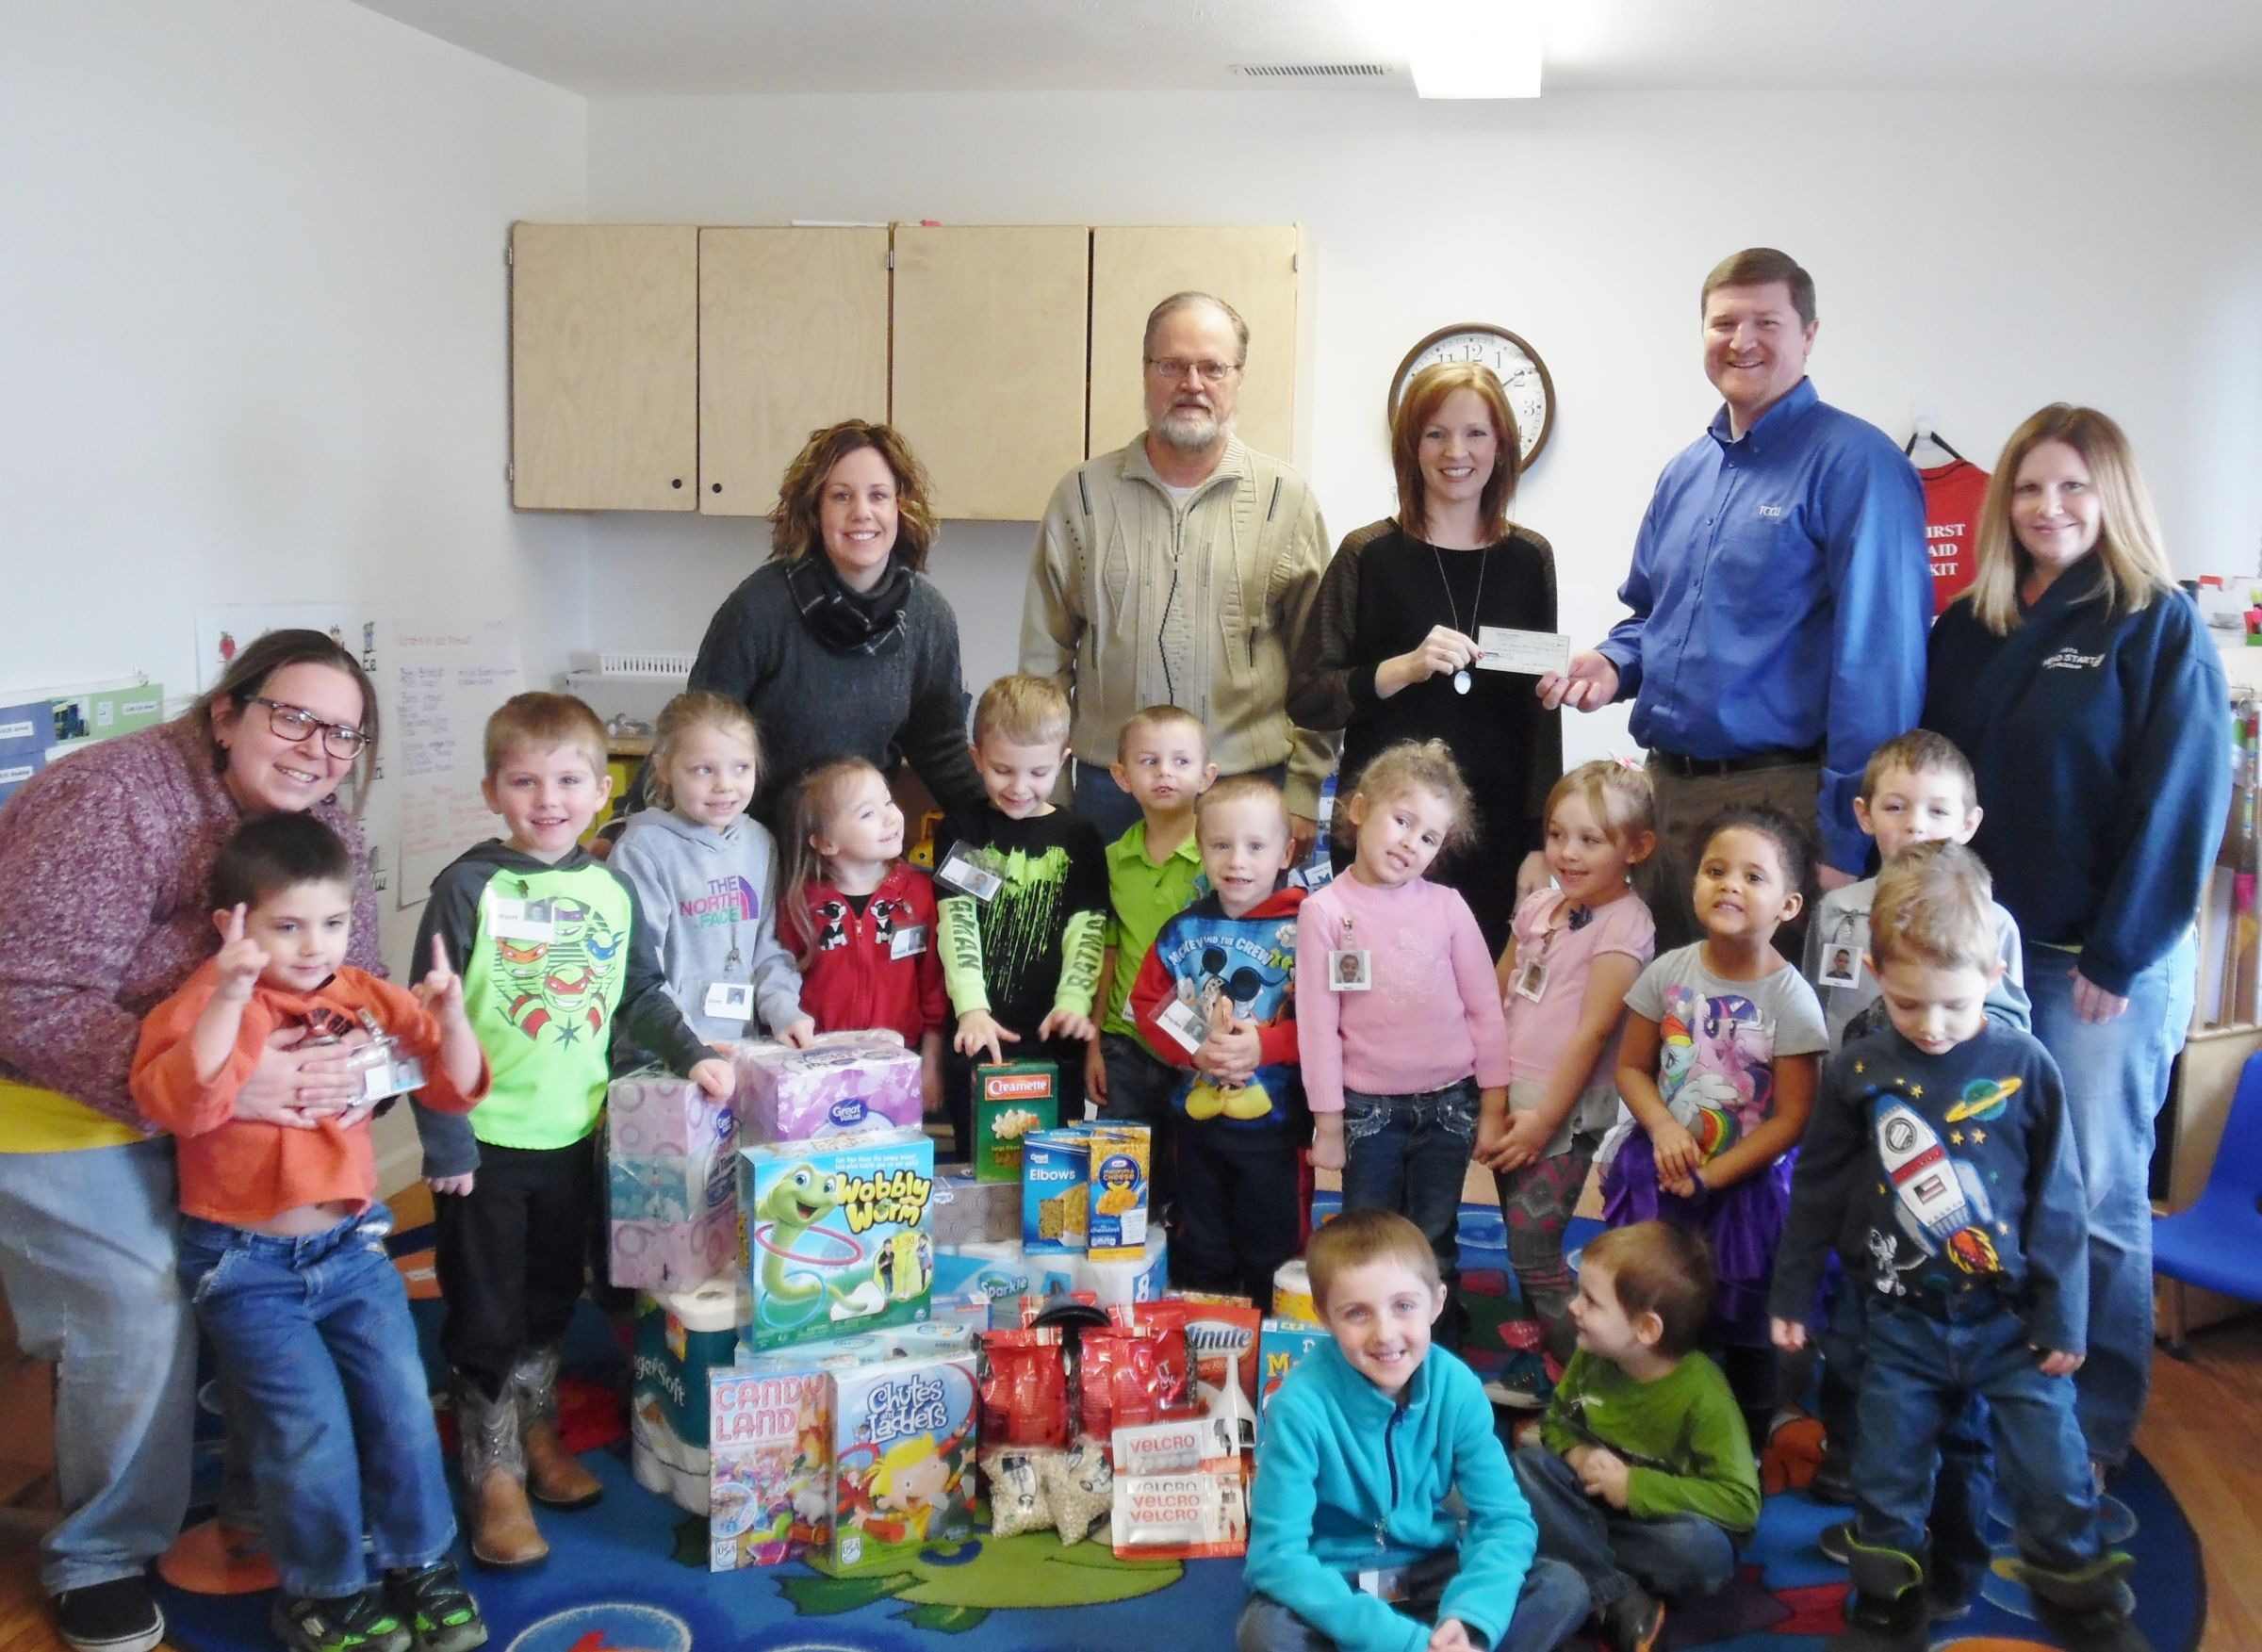 Local News - Taylorville Daily News